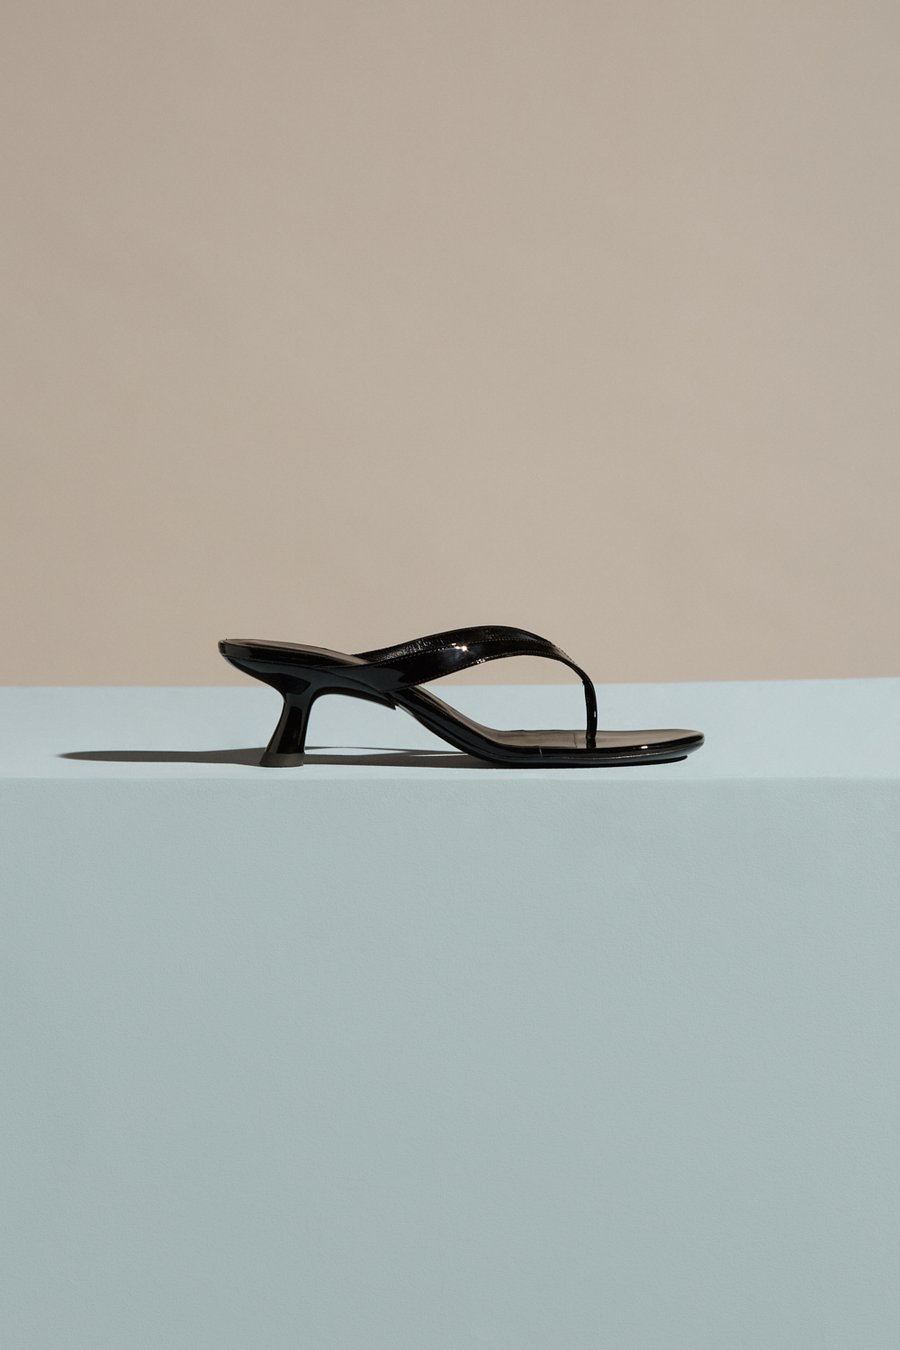 Beep Thong Sandals by Simon Miller, available on simonmillerusa.com for $370 Kendall Jenner Shoes Exact Product